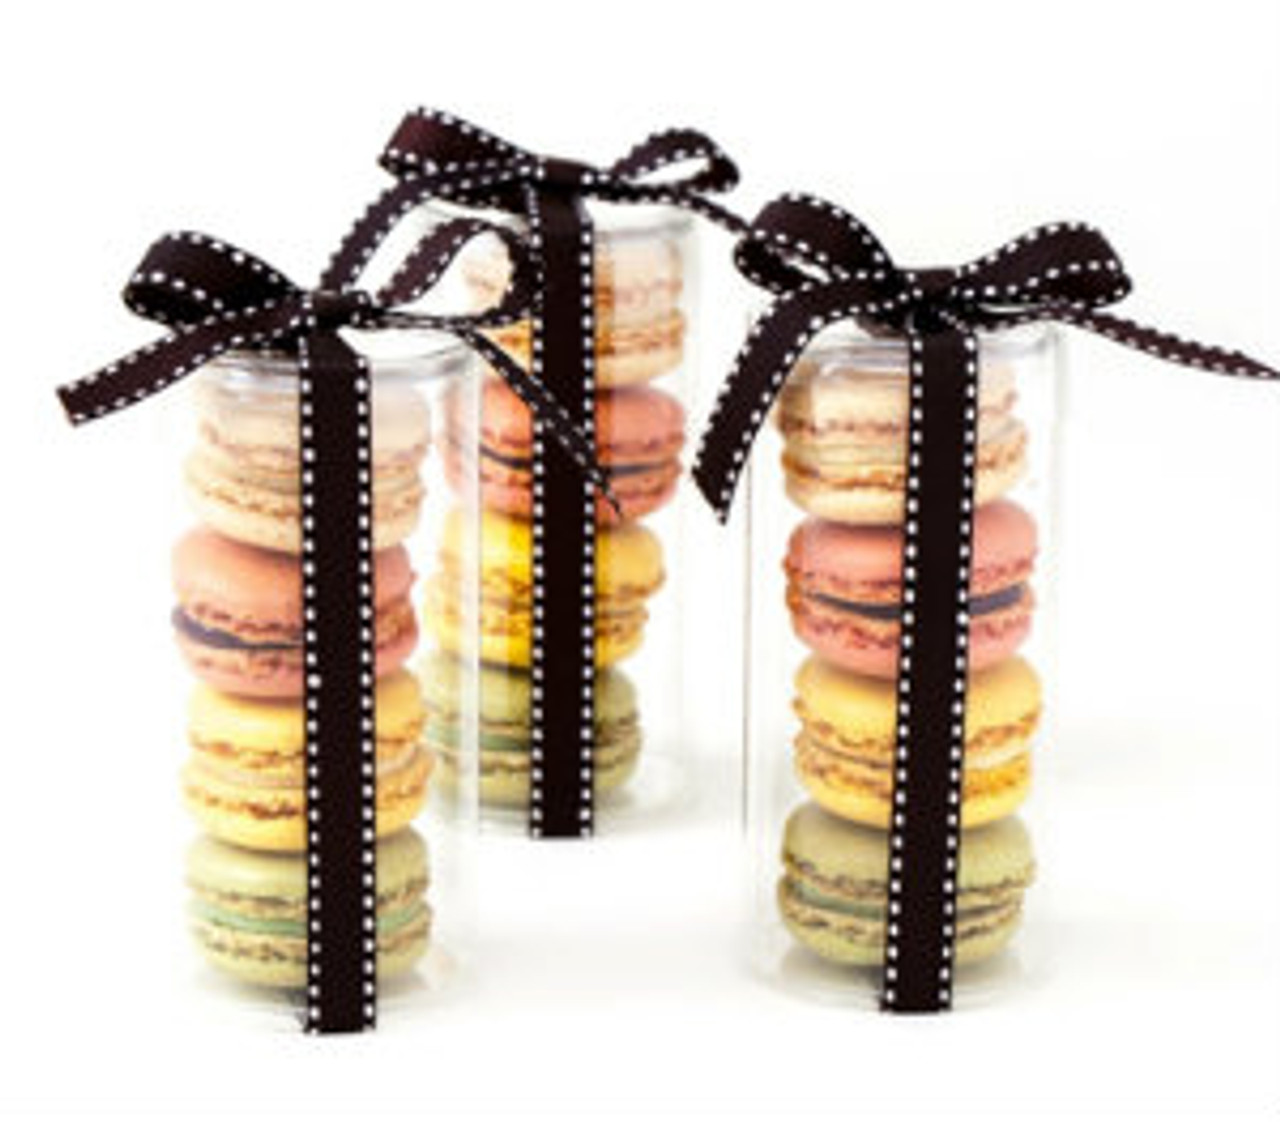 Tube - 4 Macarons - In store only!